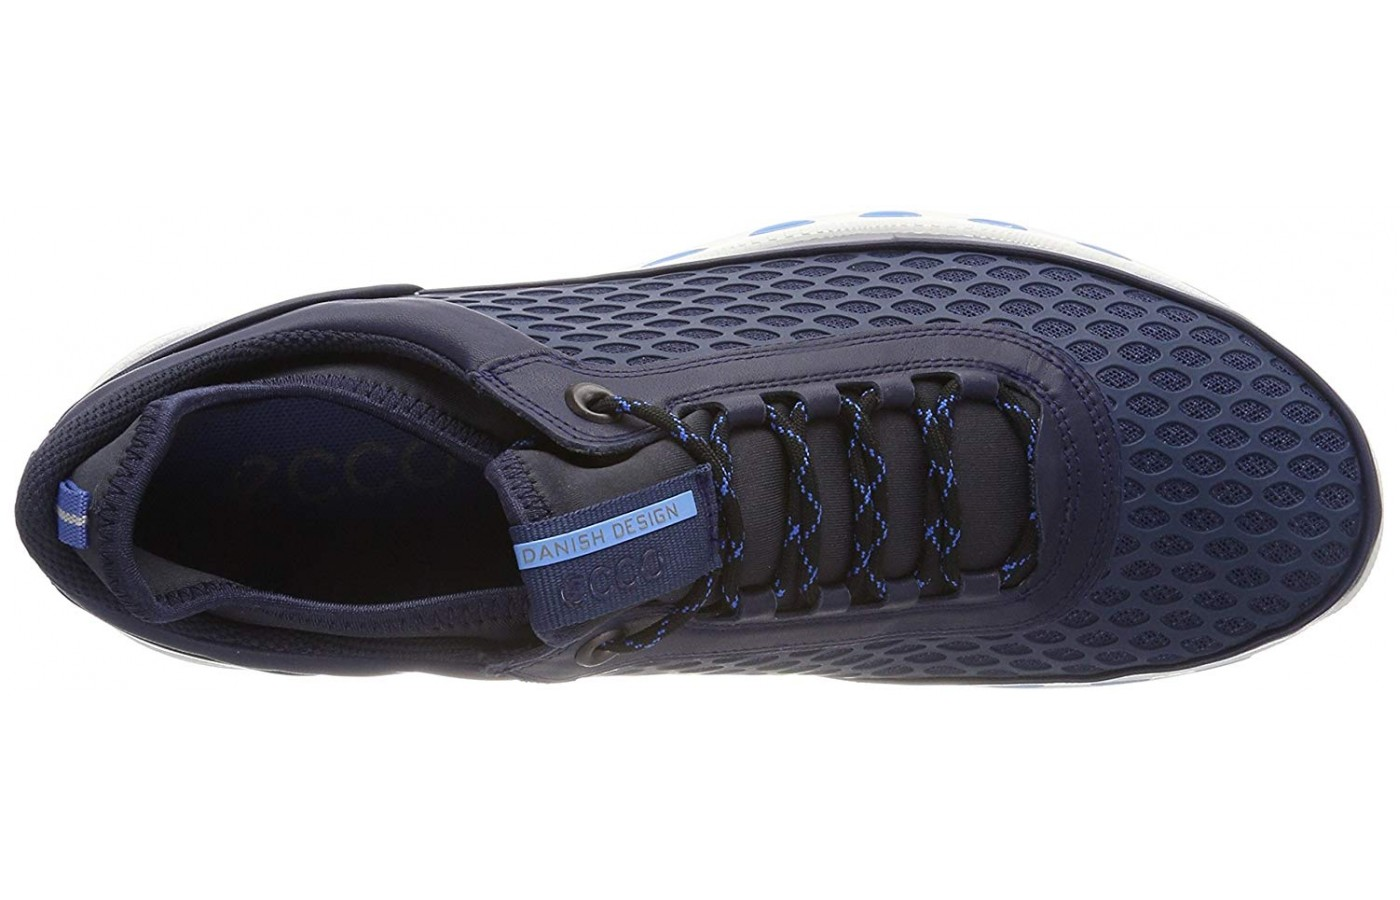 ECCO Cool 2.0 Textile Upper